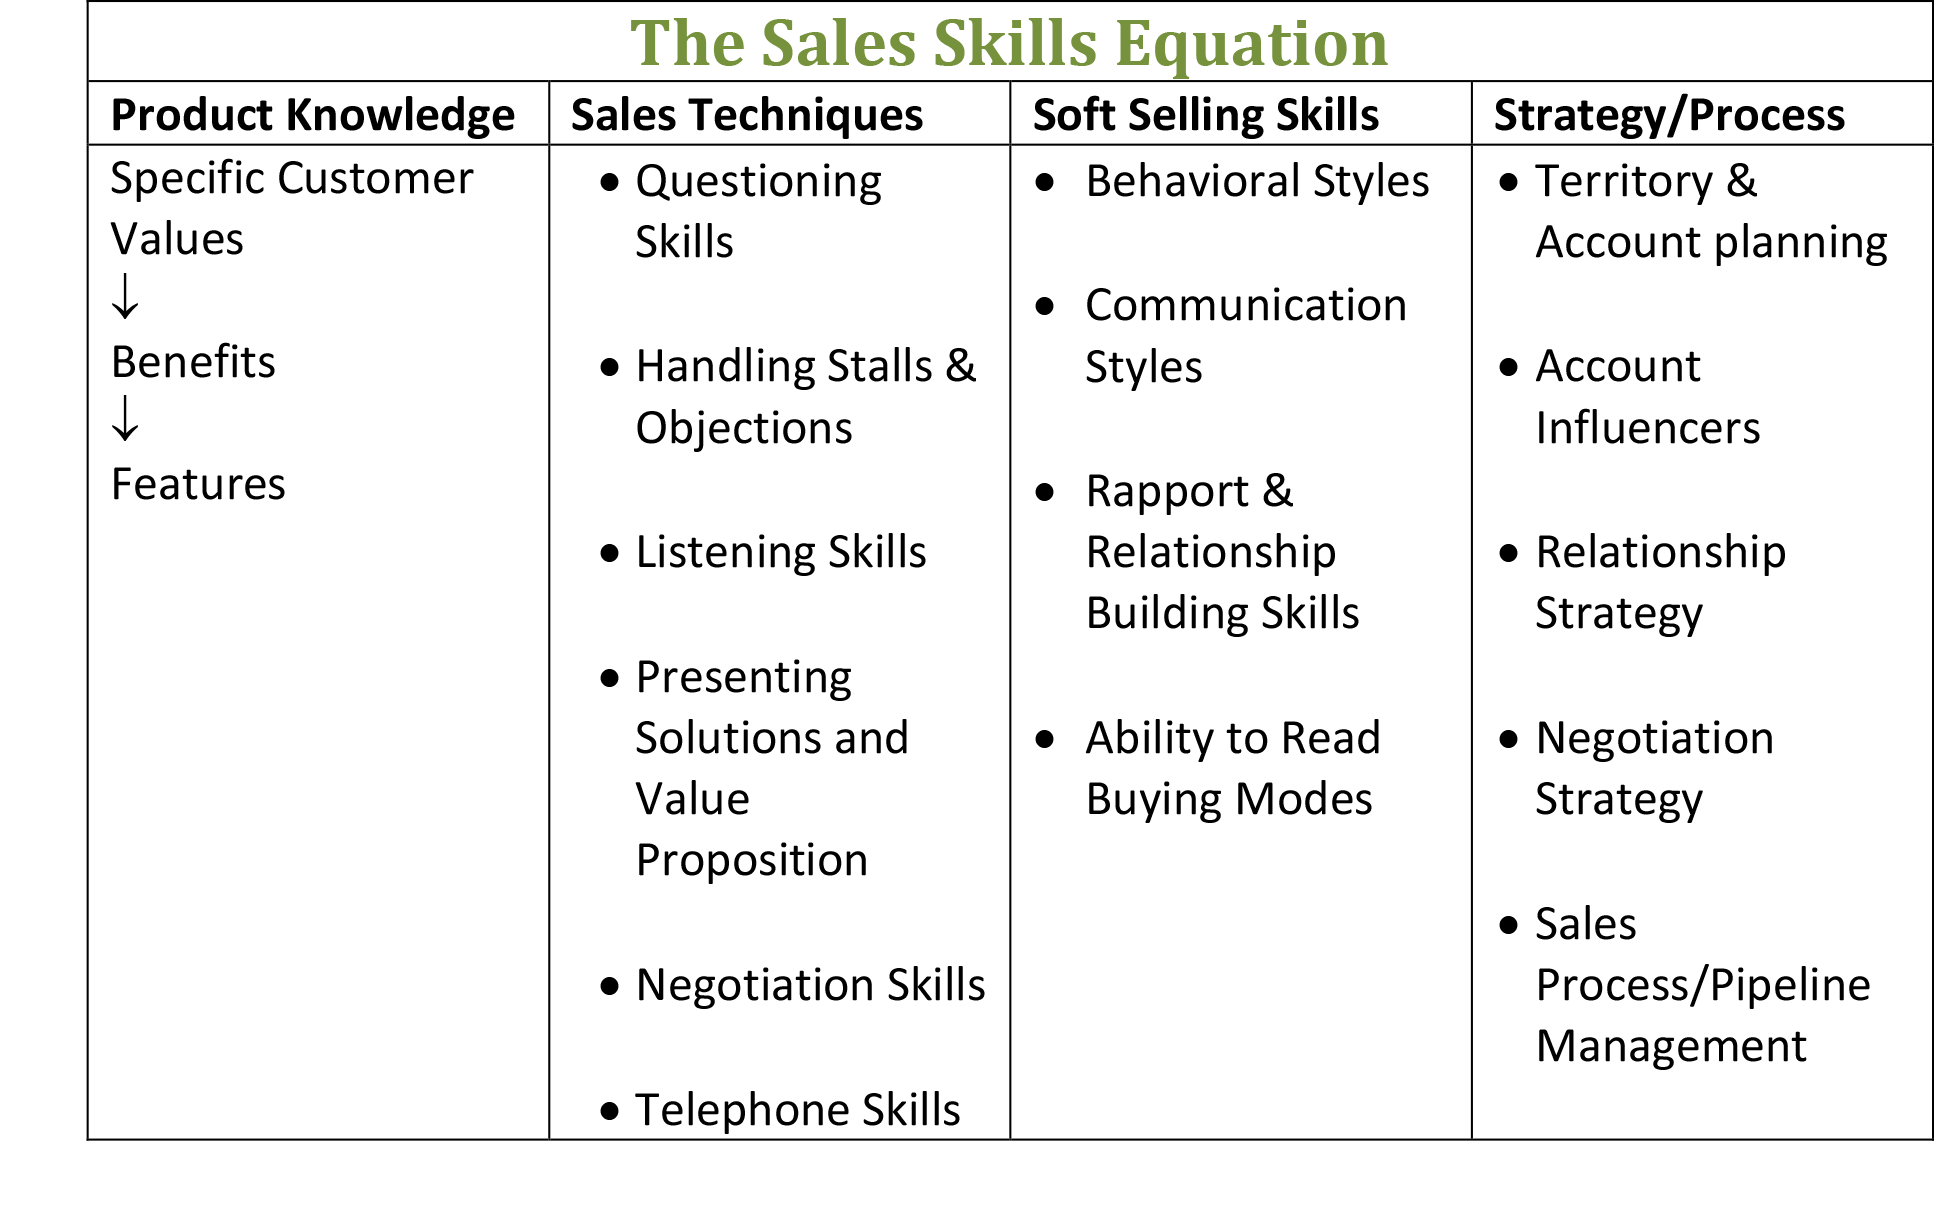 The Sales Skills Equation